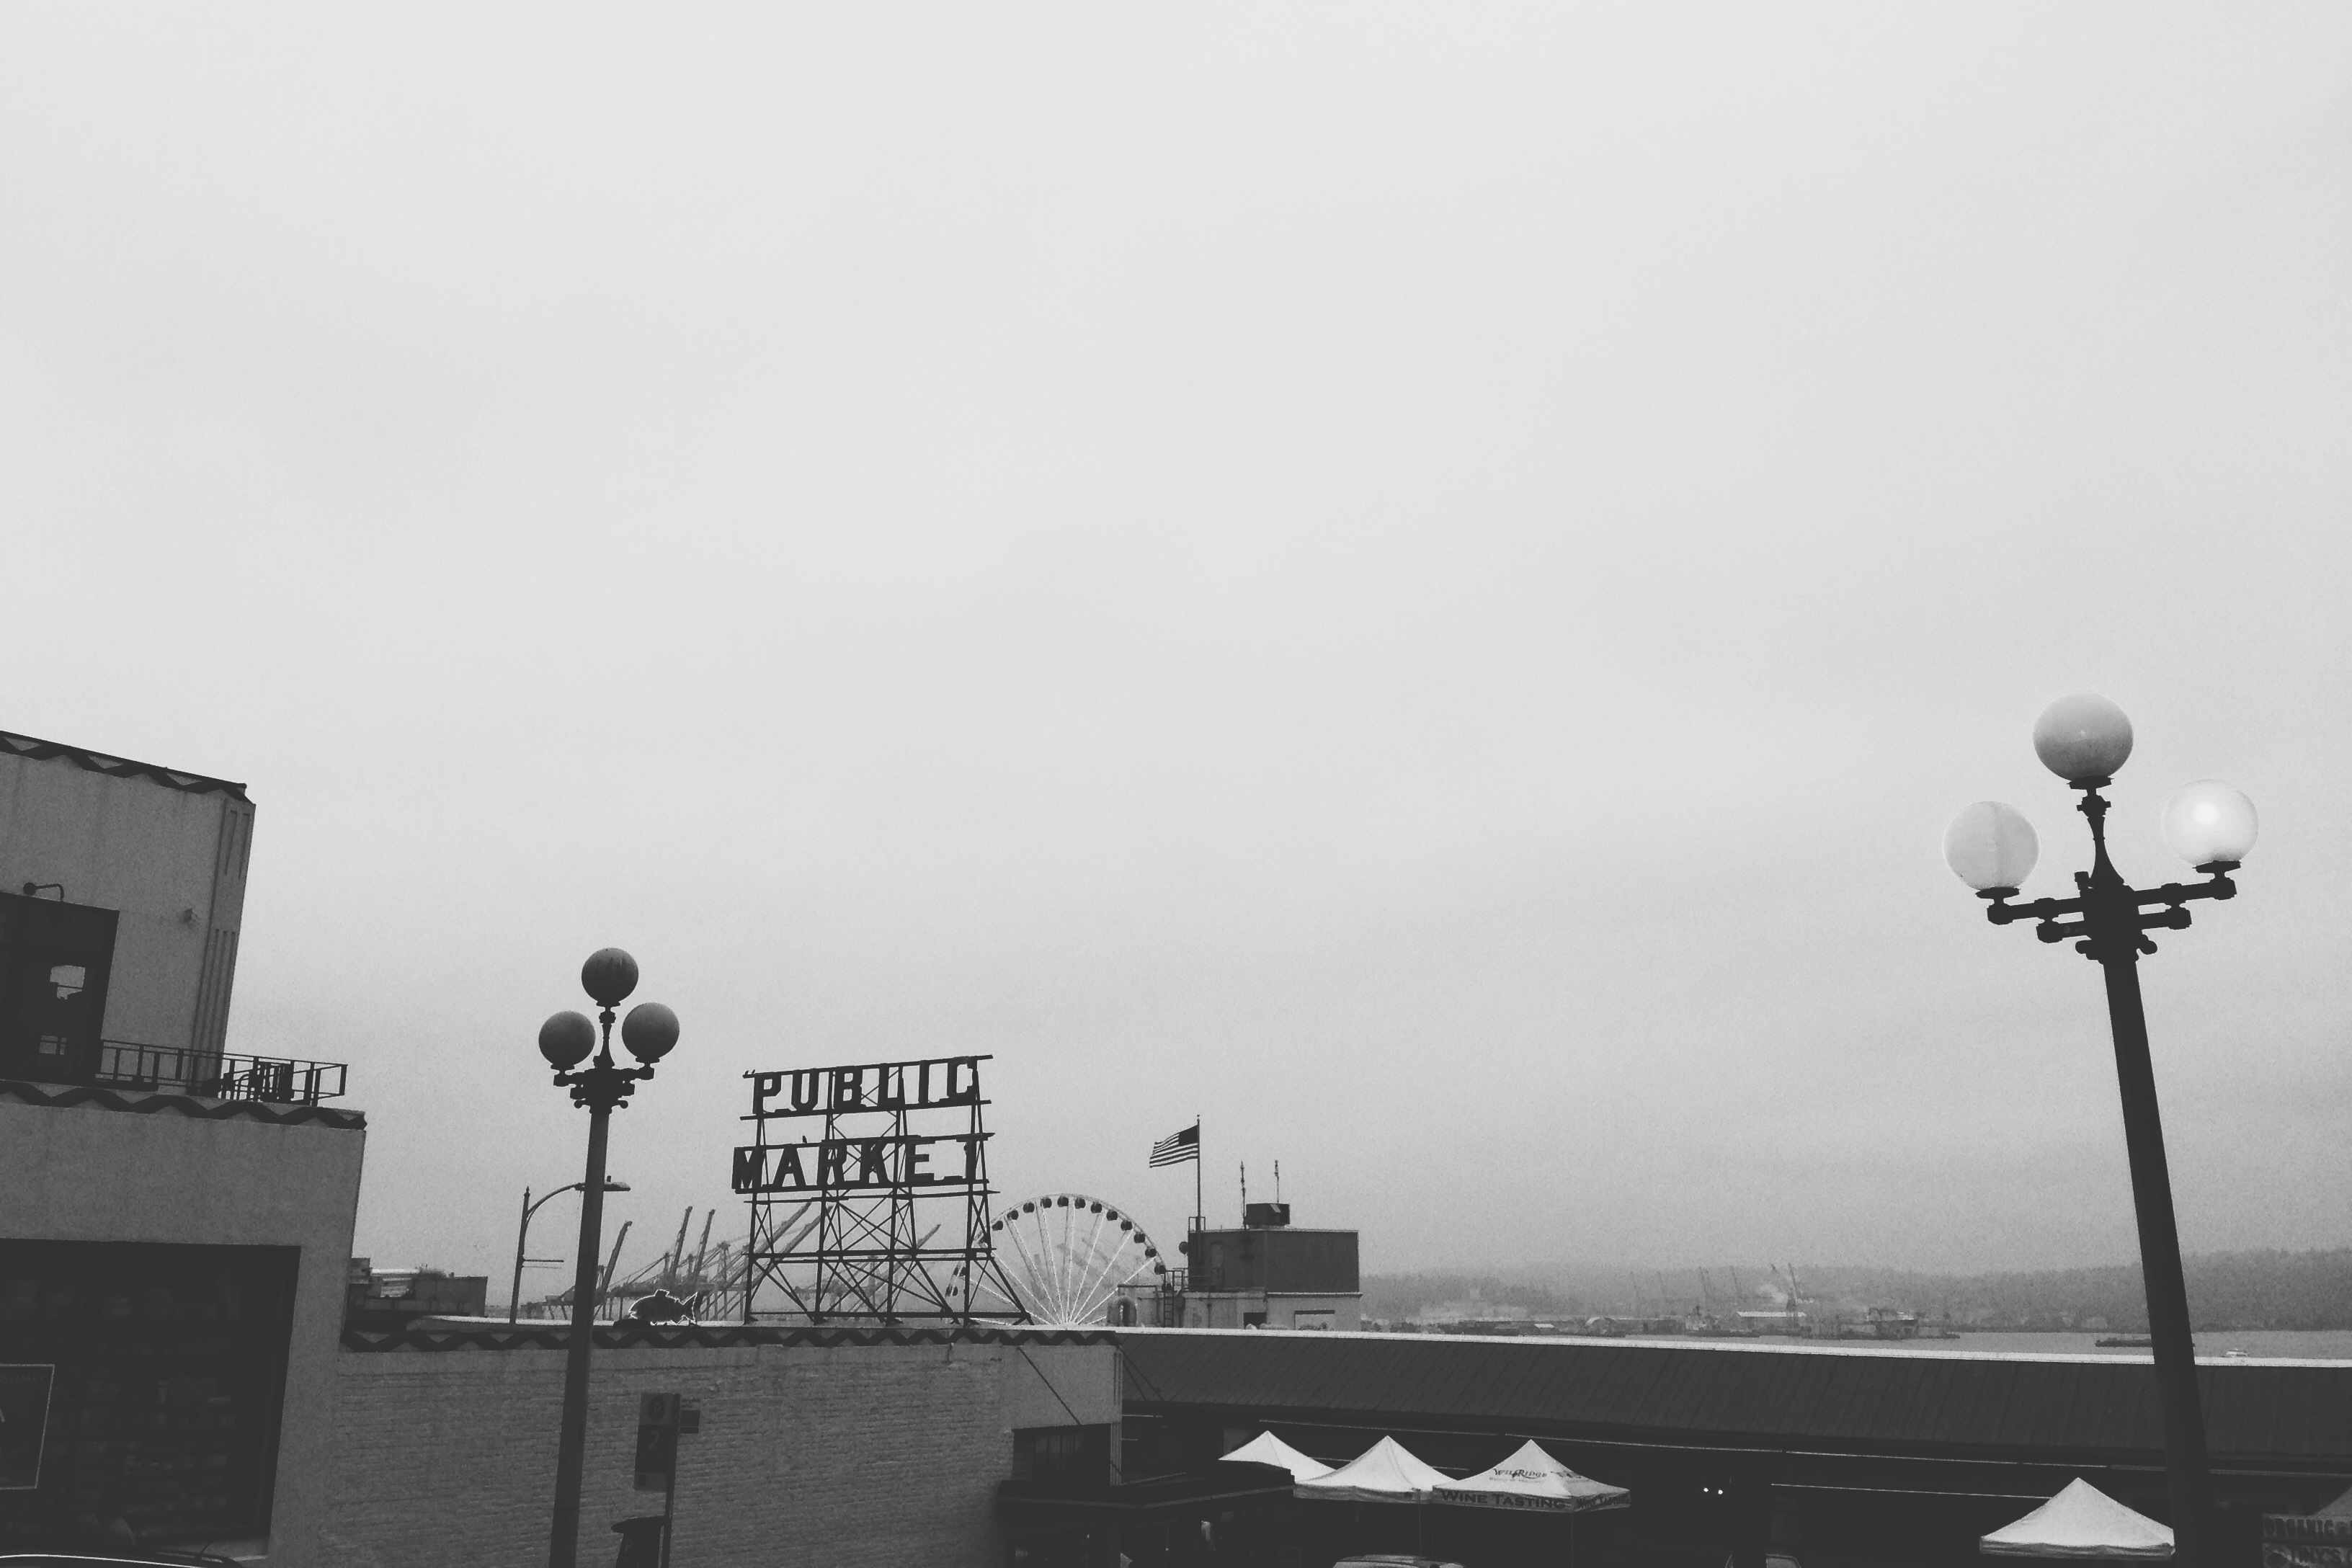 Seattle Pikes Market